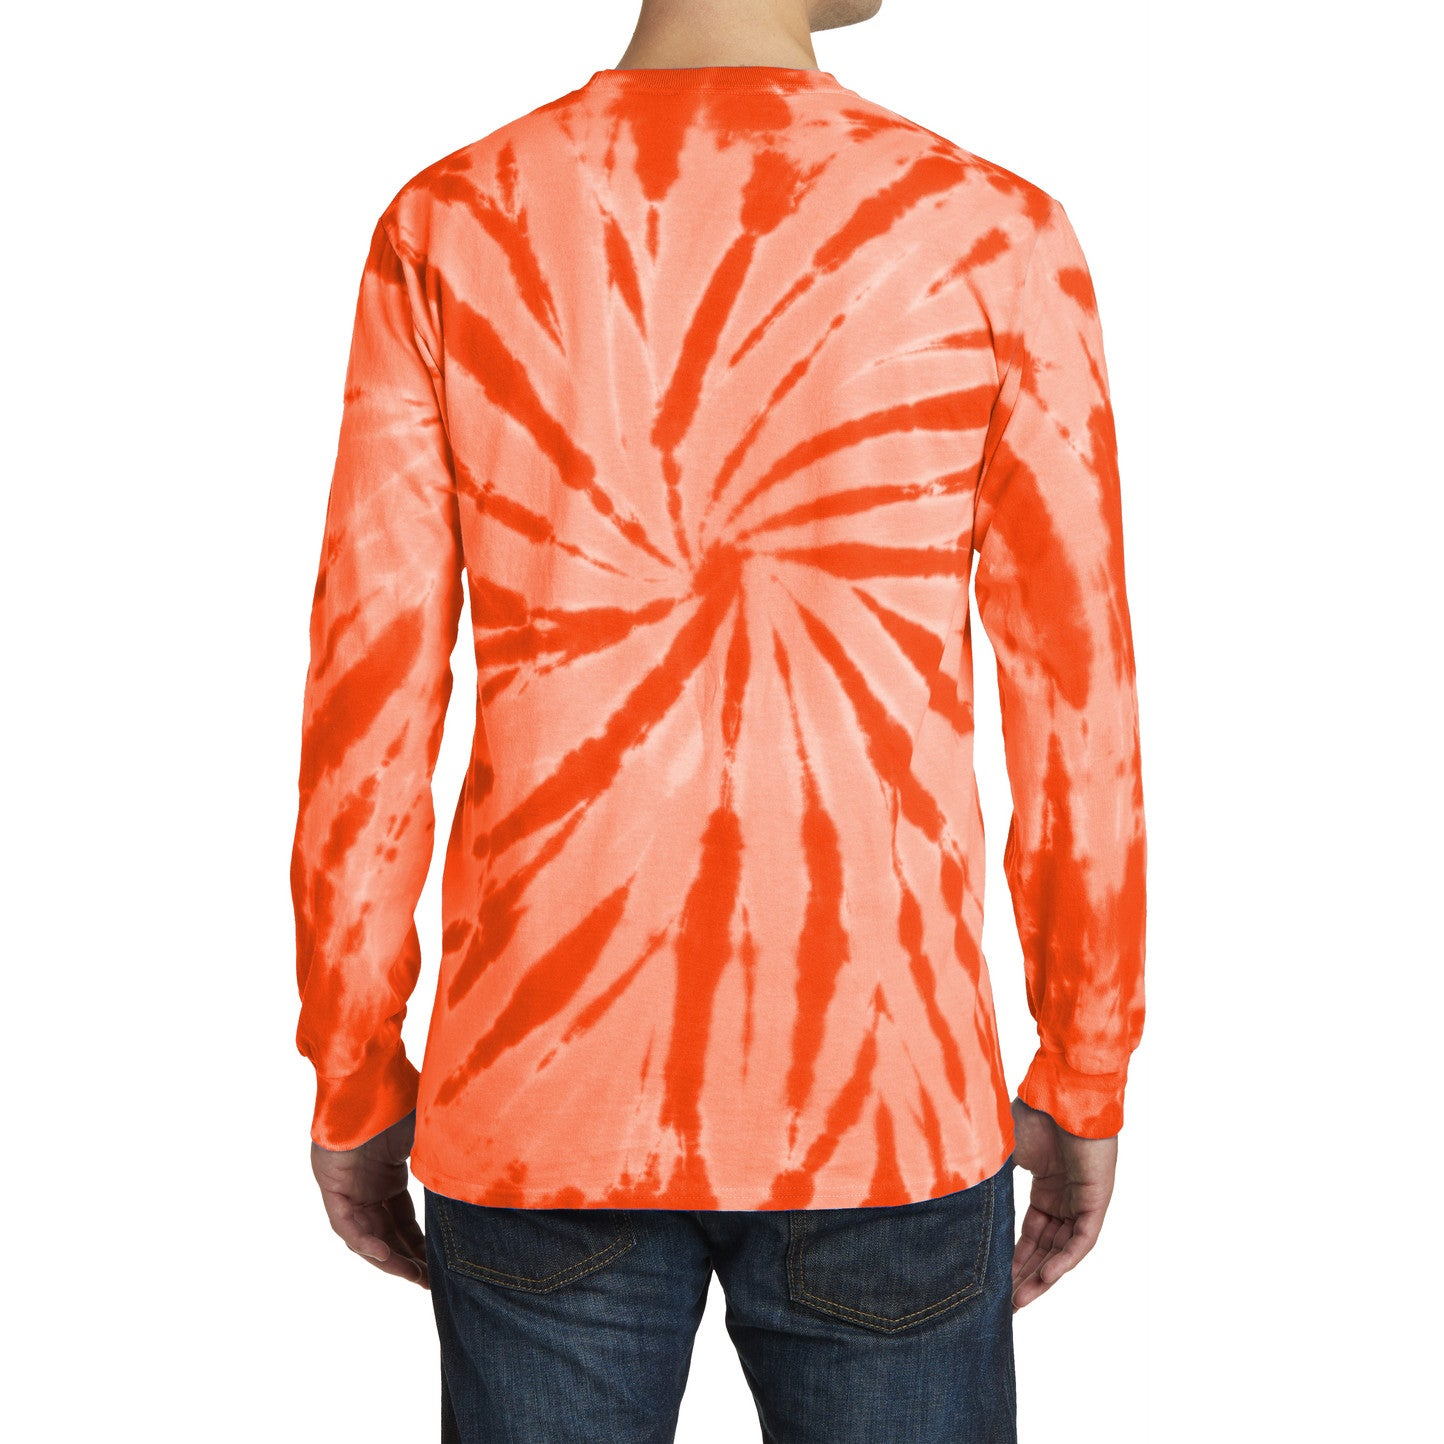 Men's Tie-Dye Long Sleeve Tee - Orange - Back